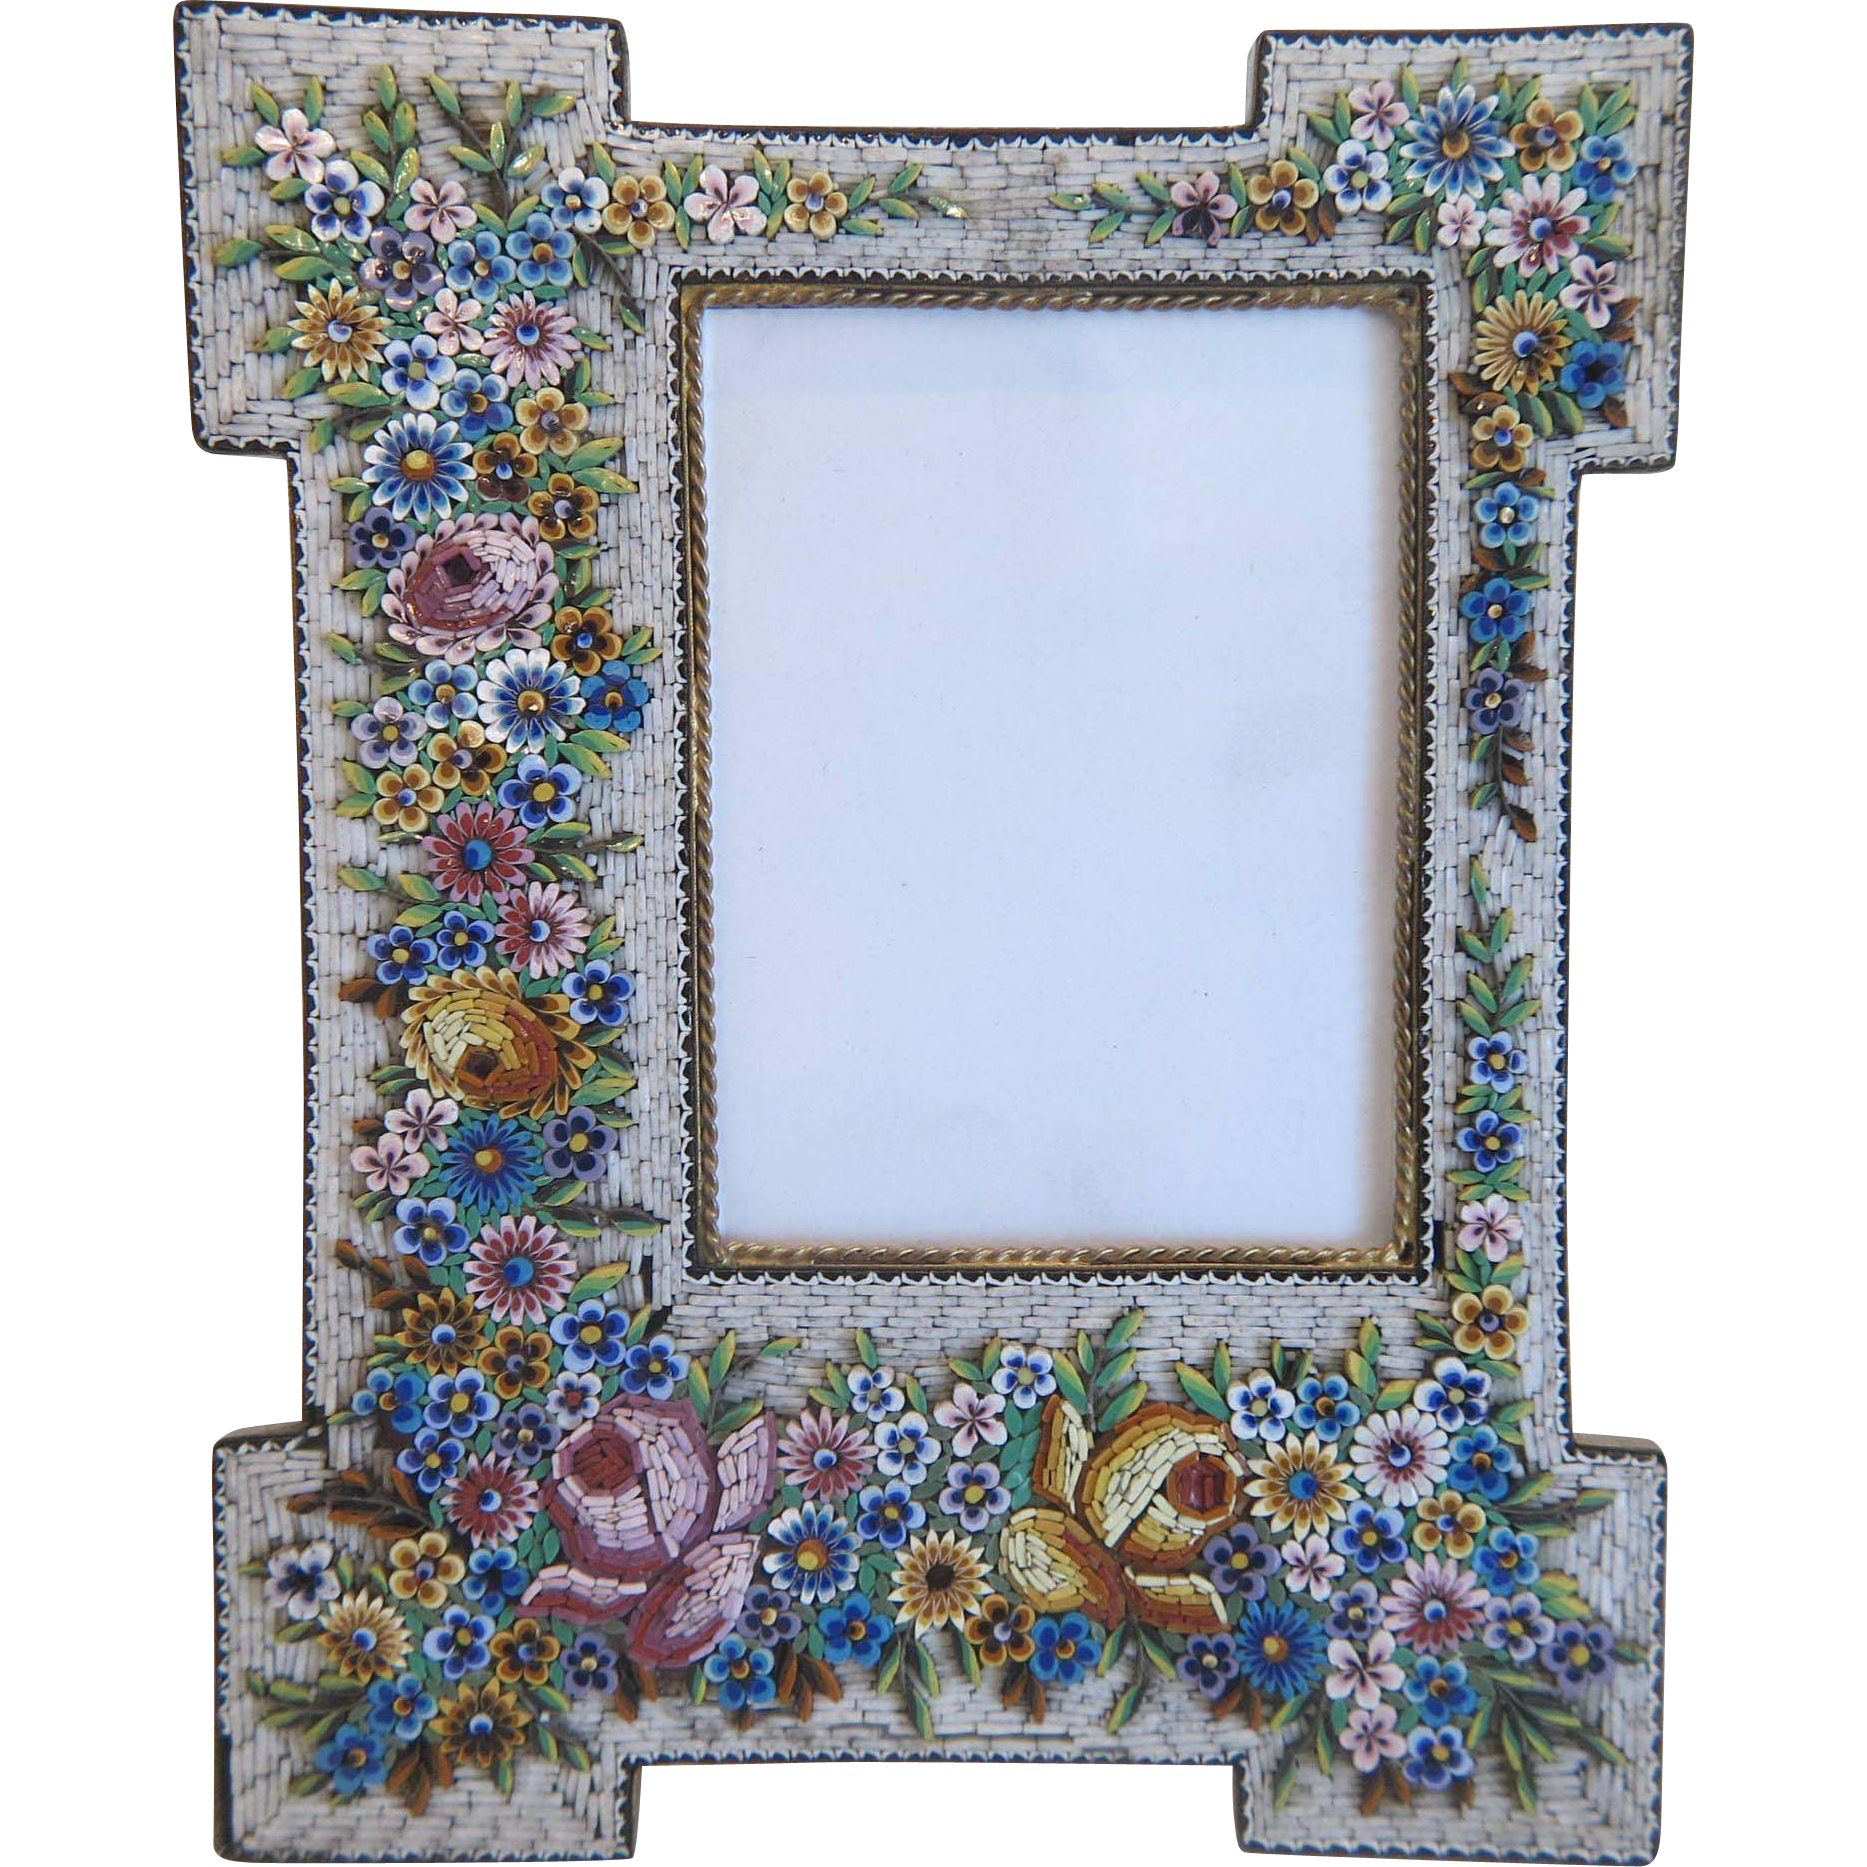 Grand Tour Era Micro Mosaic flower frame, 19th century